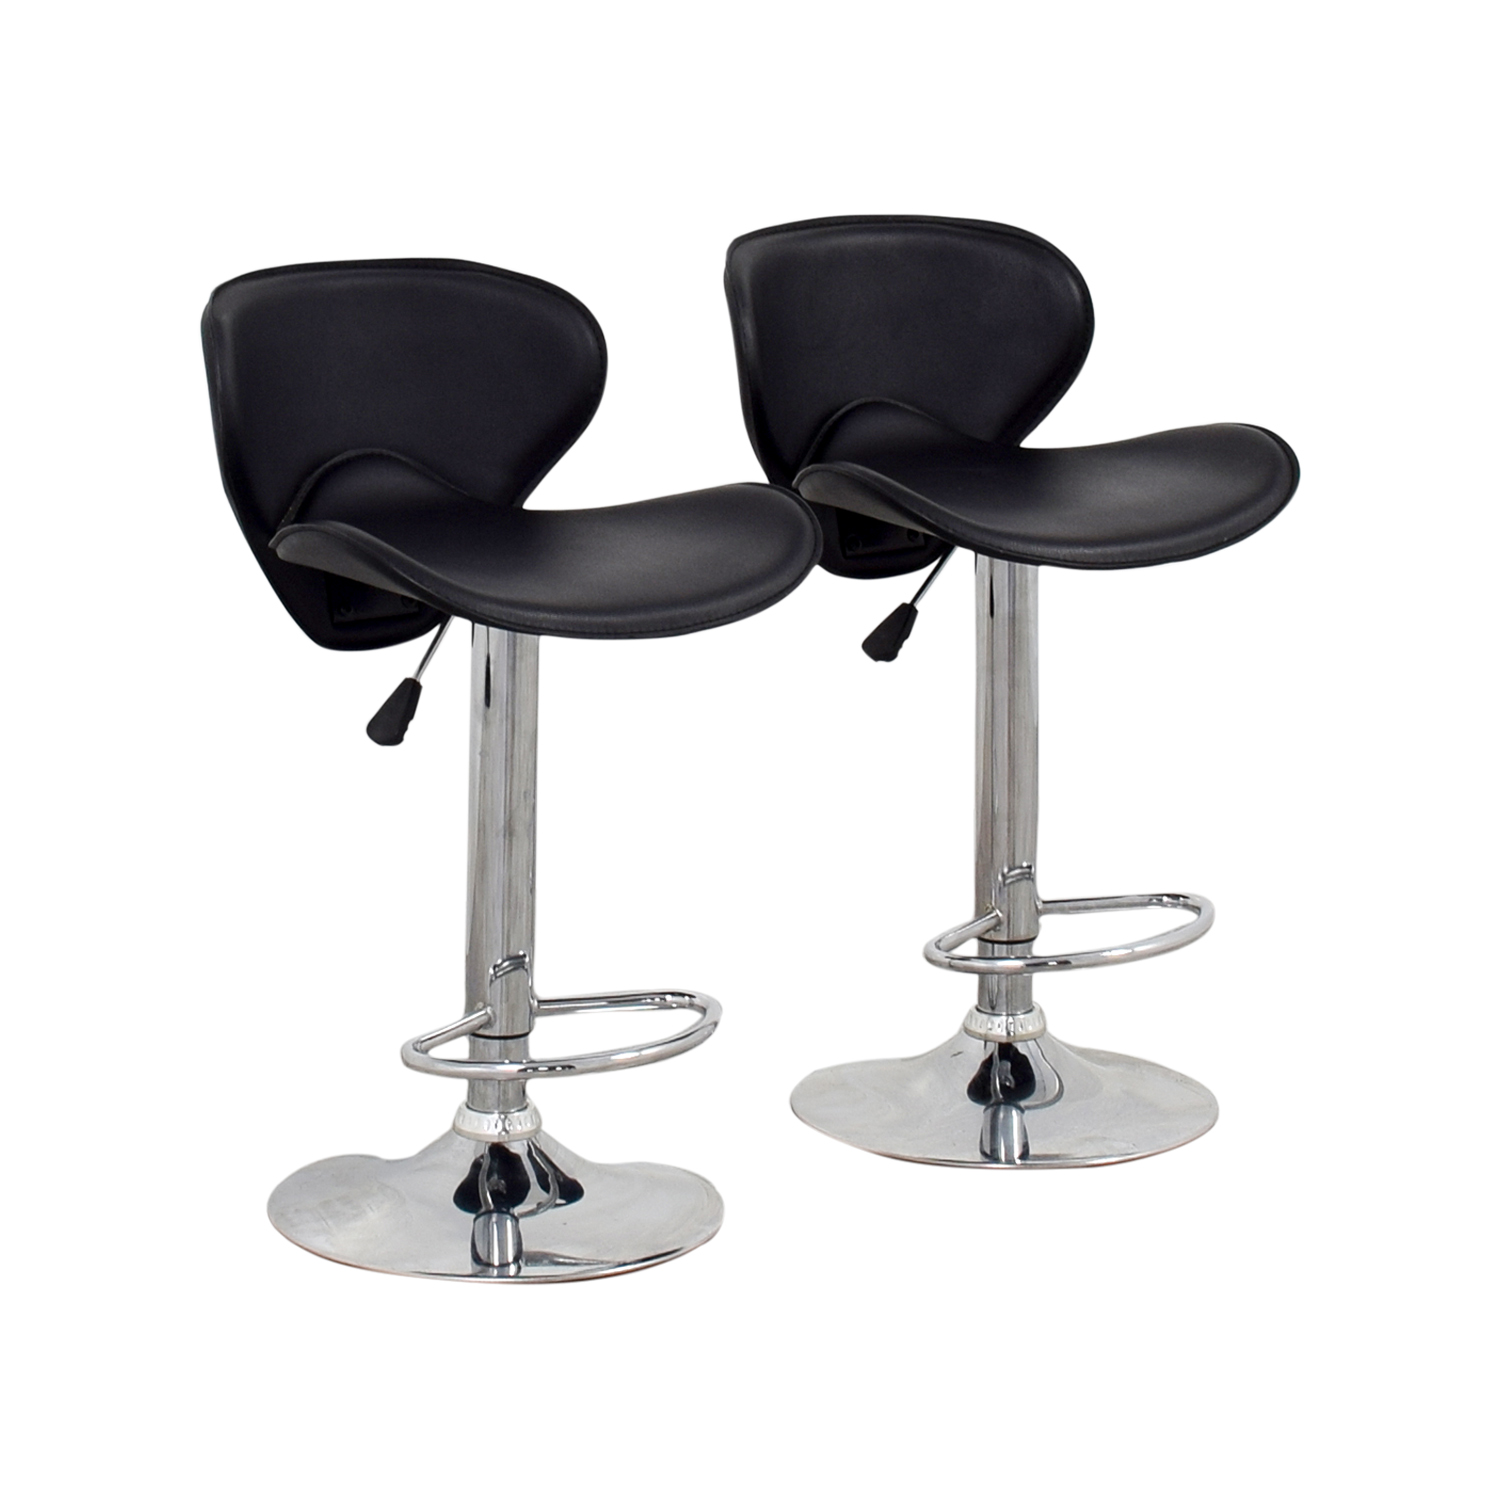 Magnificent 68 Off Black Leather Adjustable Bar Stools Chairs Ncnpc Chair Design For Home Ncnpcorg